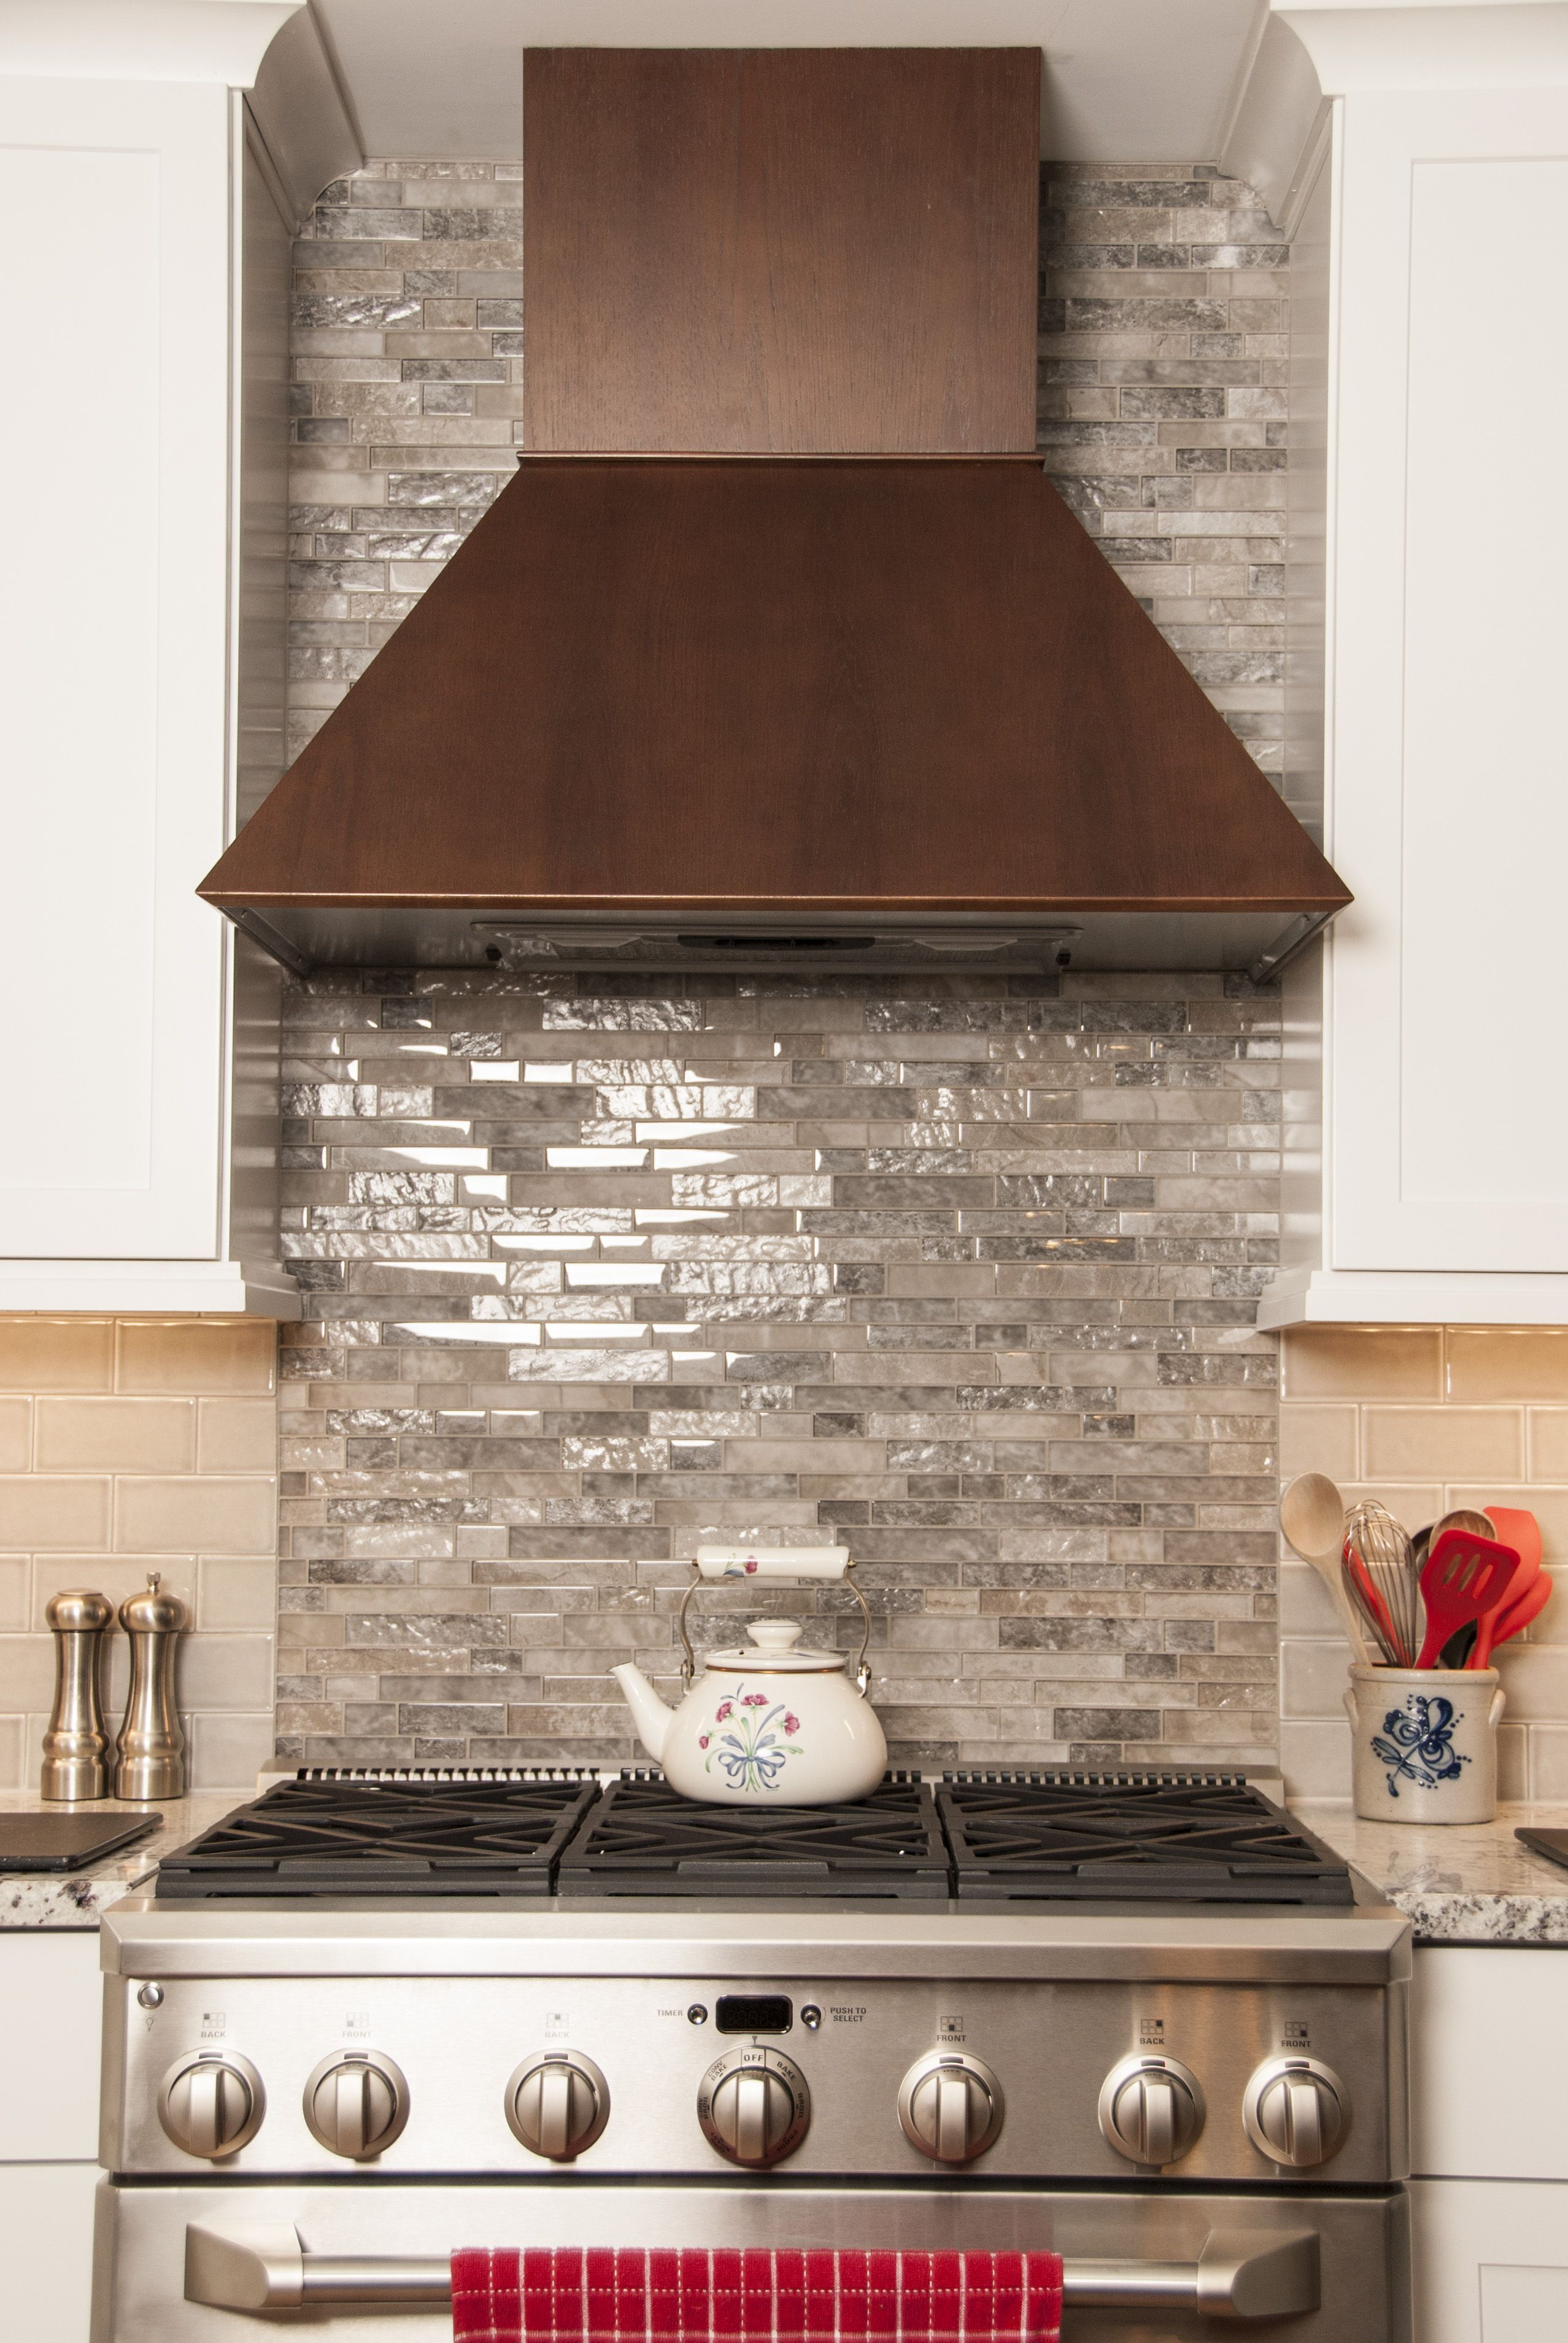 Wood hood white cabinets twotoned cabinets stainless steel range